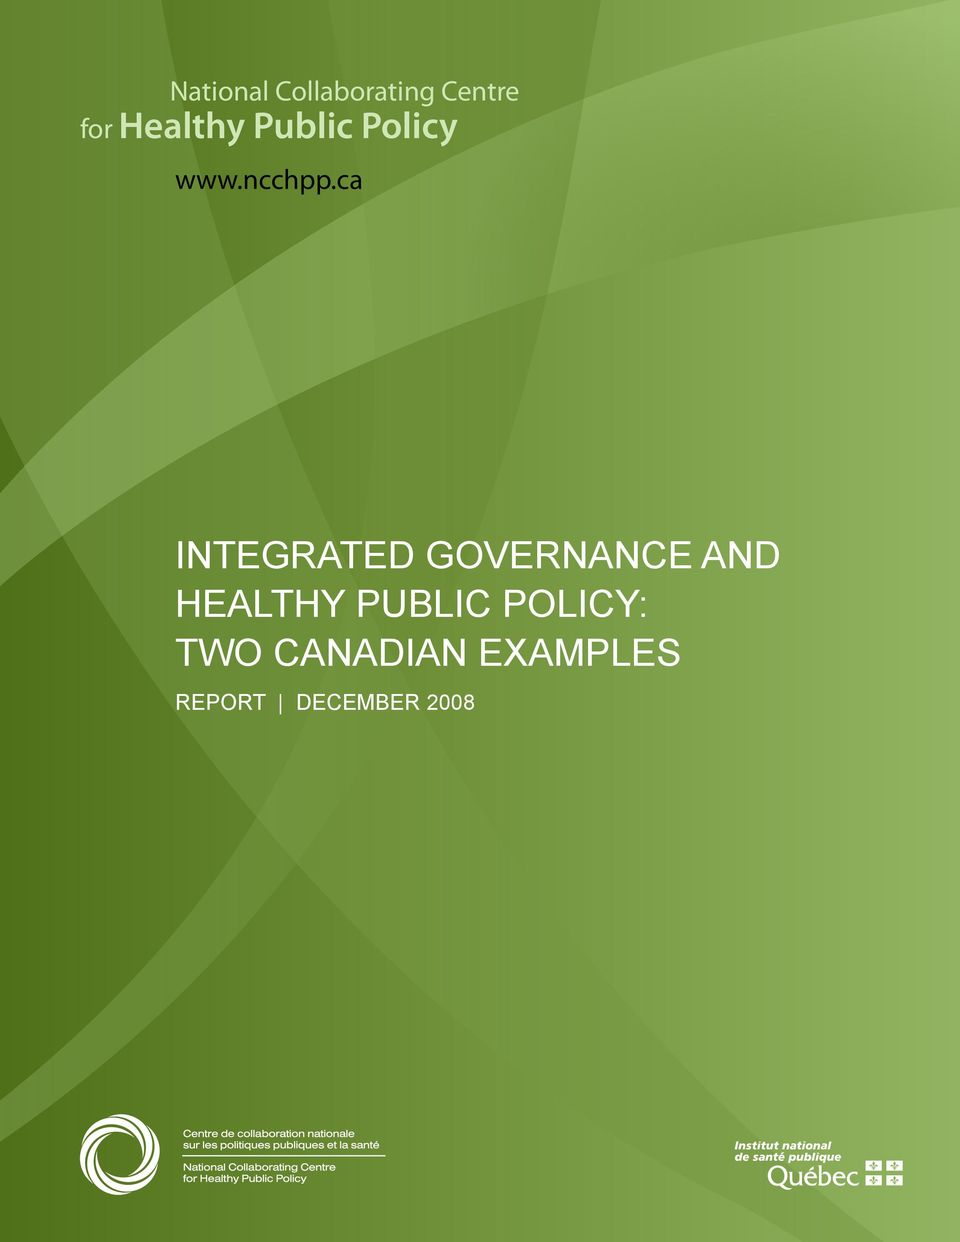 ca INTEGRATED GOVERNANCE AND HEALTHY